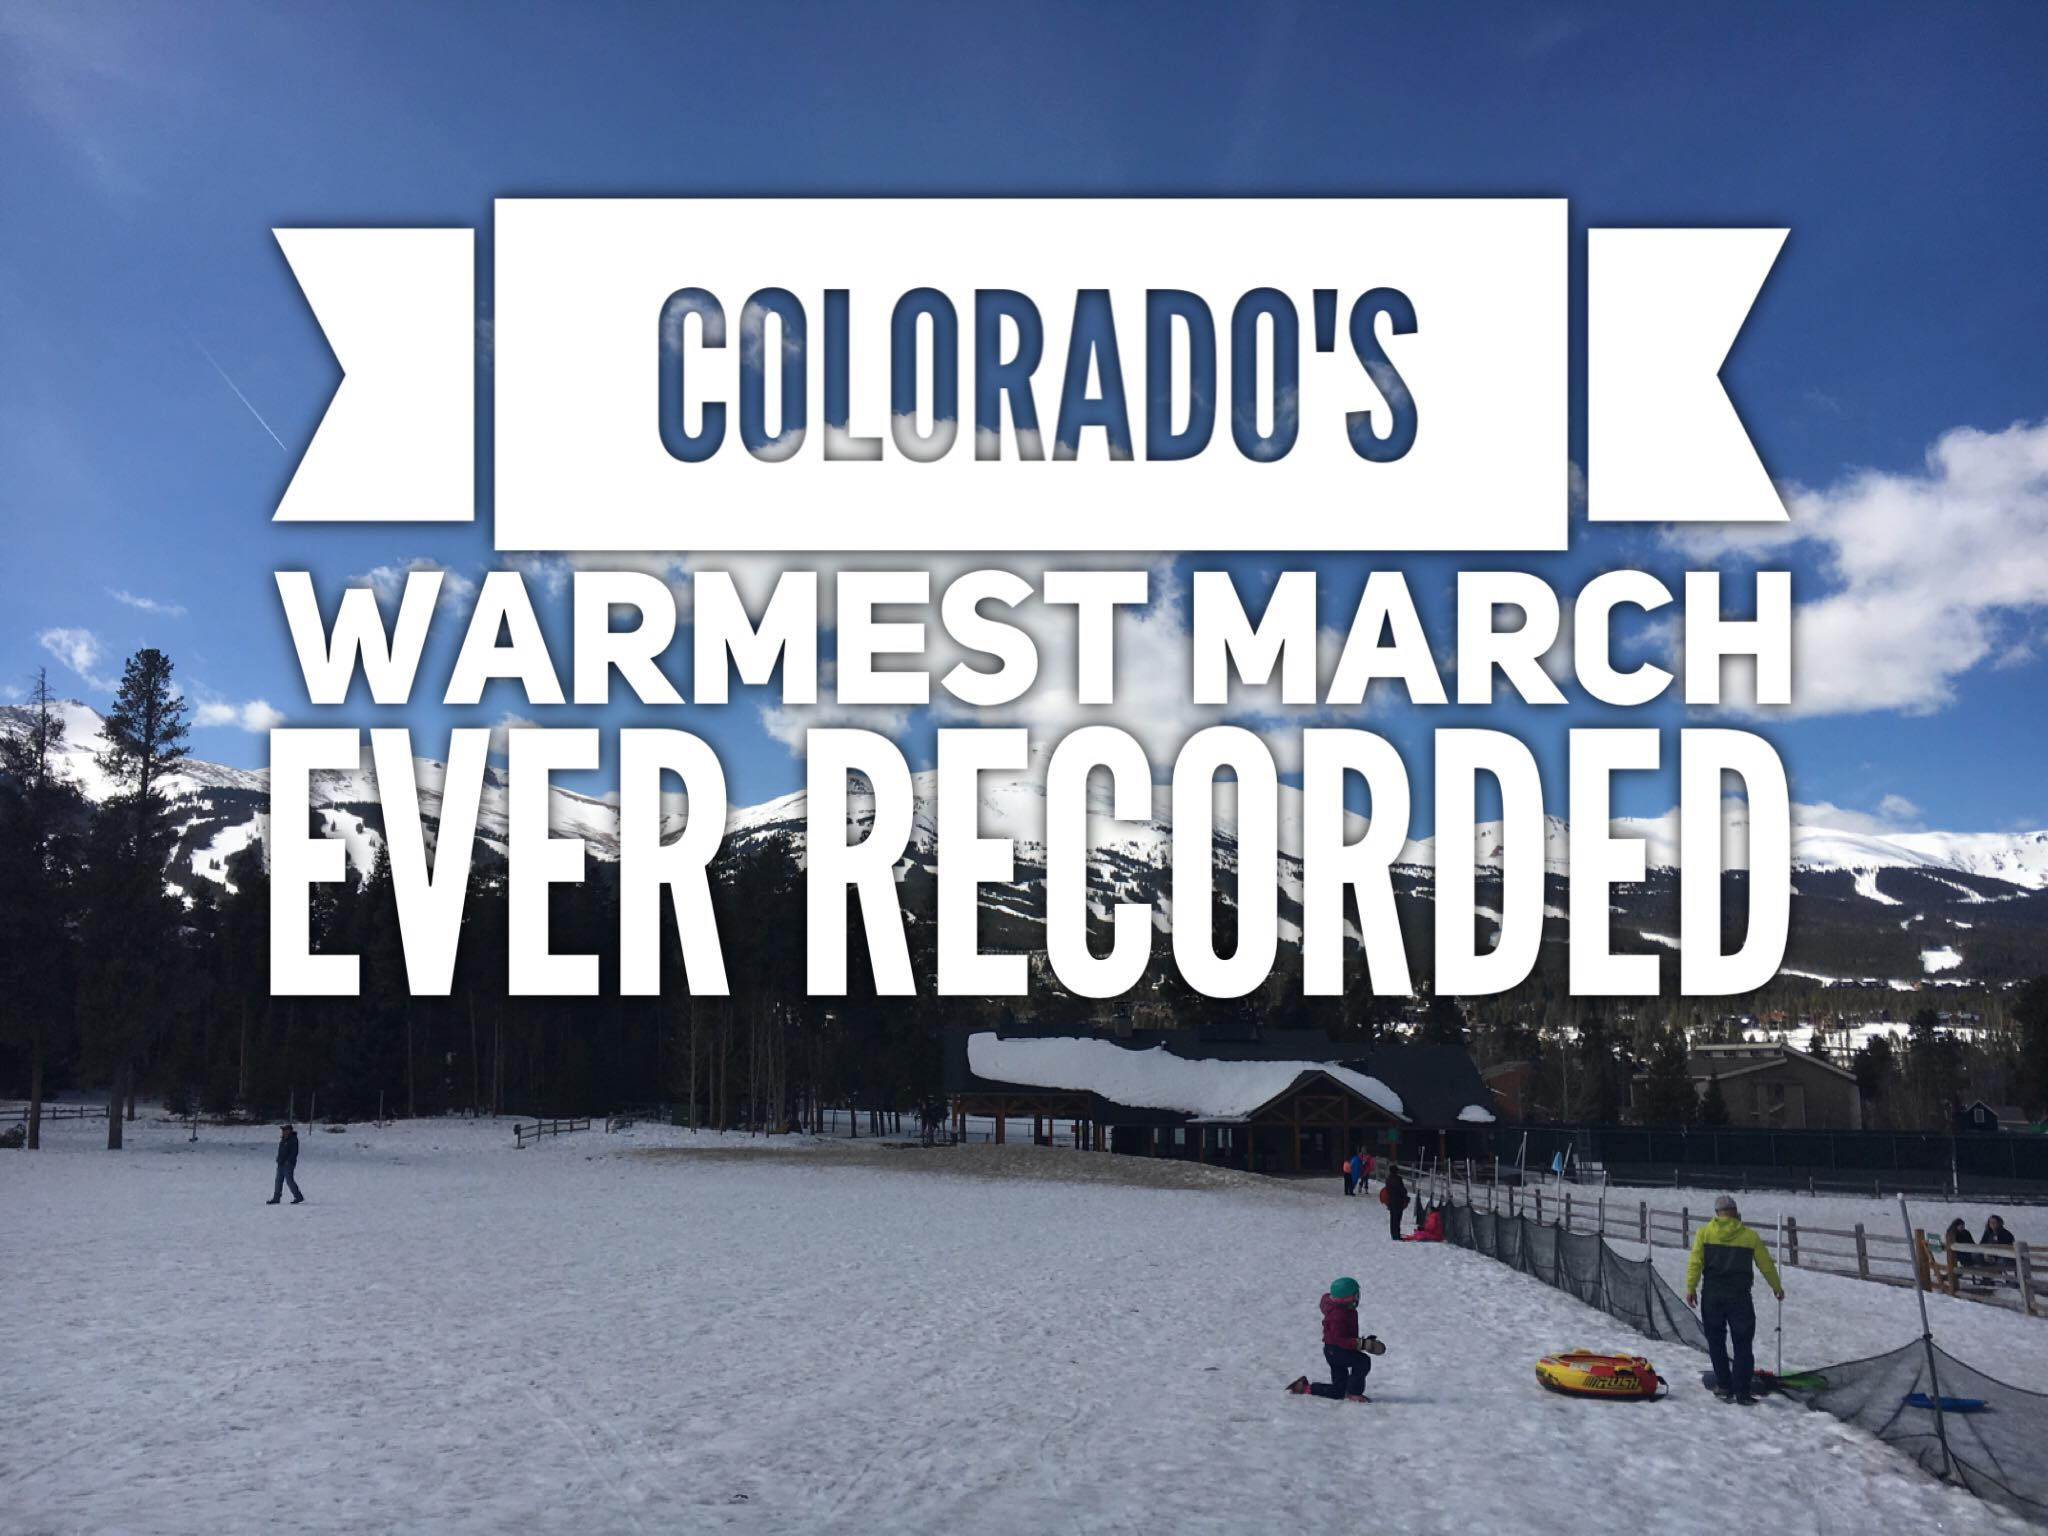 Colorado Records Warmest March Ever, How Did Castle Rock Do?